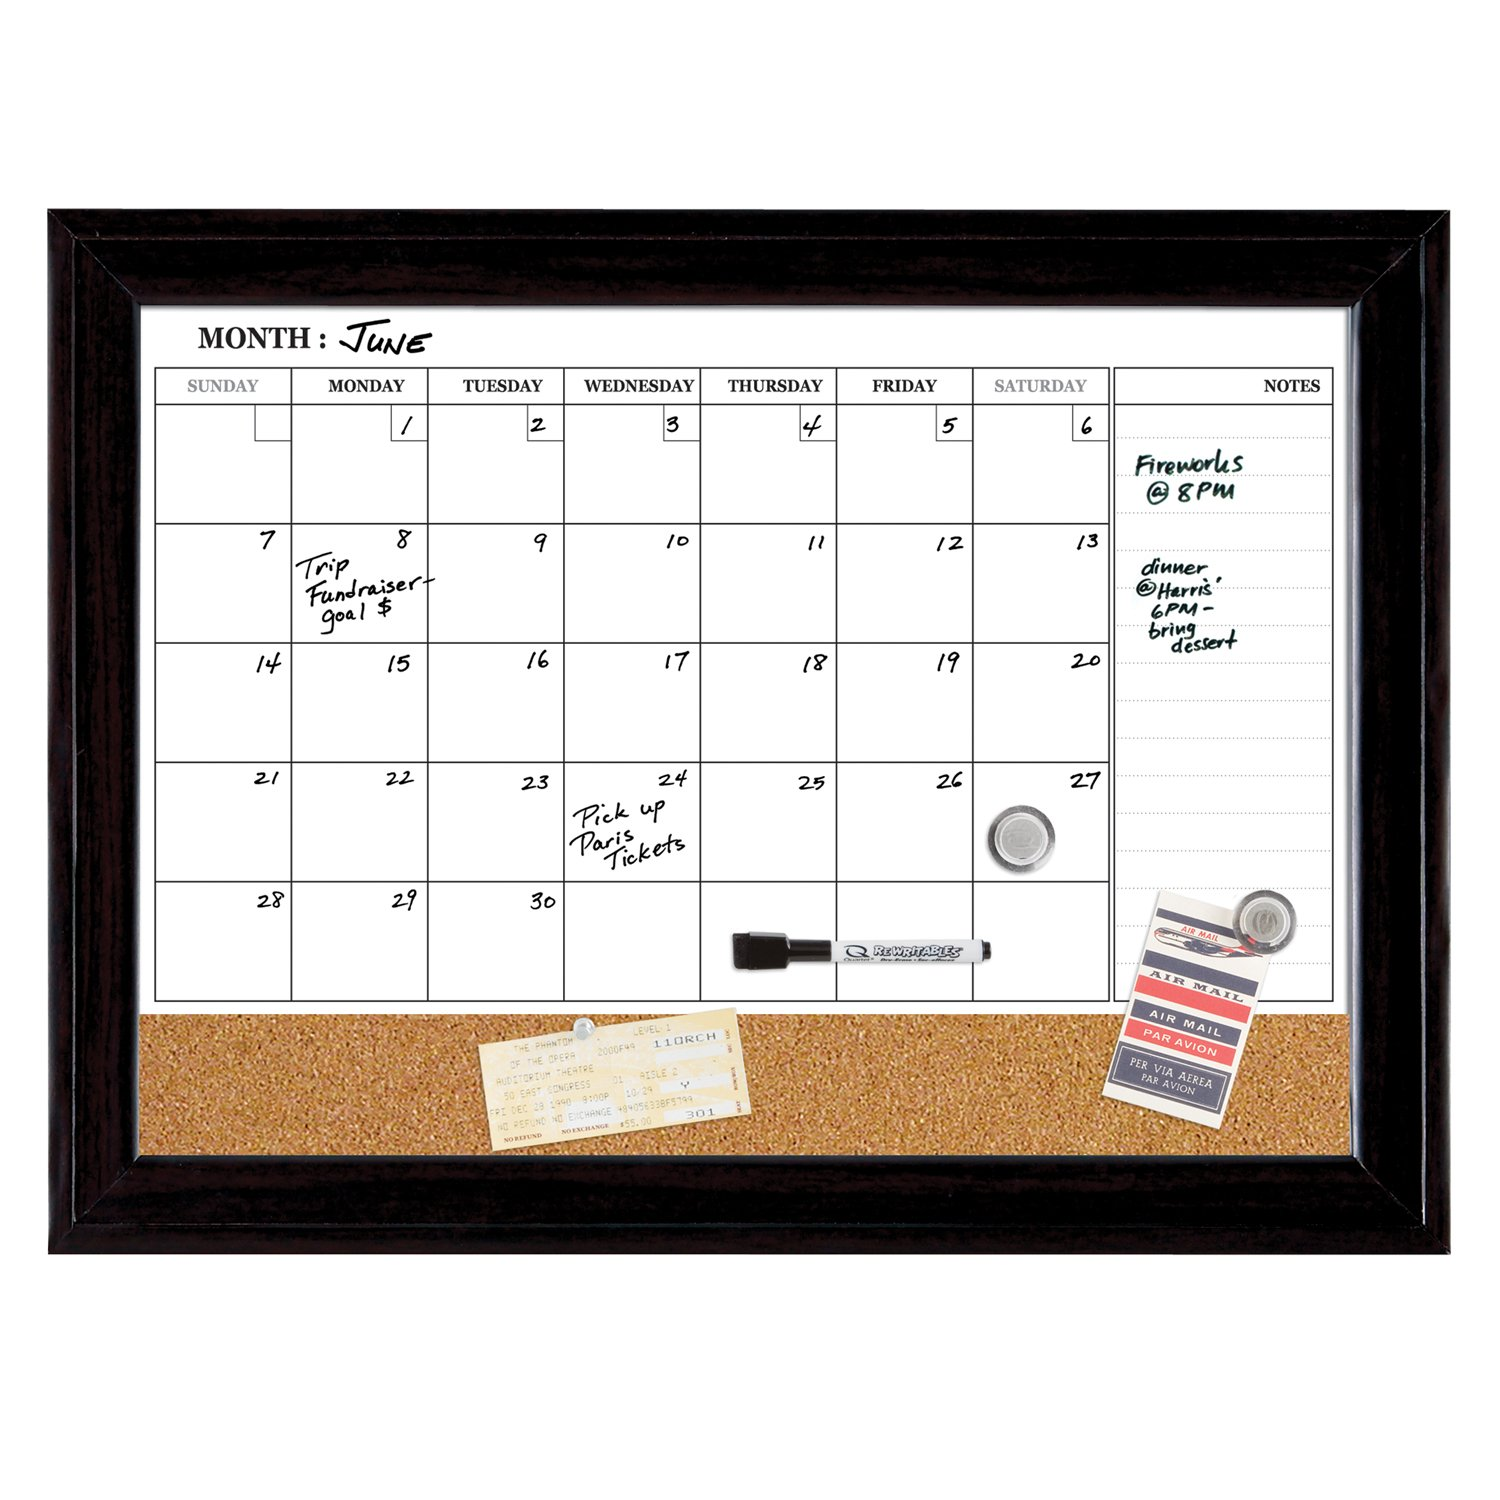 Dry Erase Weekly Calendar : Best calendar dry erase boards weekly monthly daily for